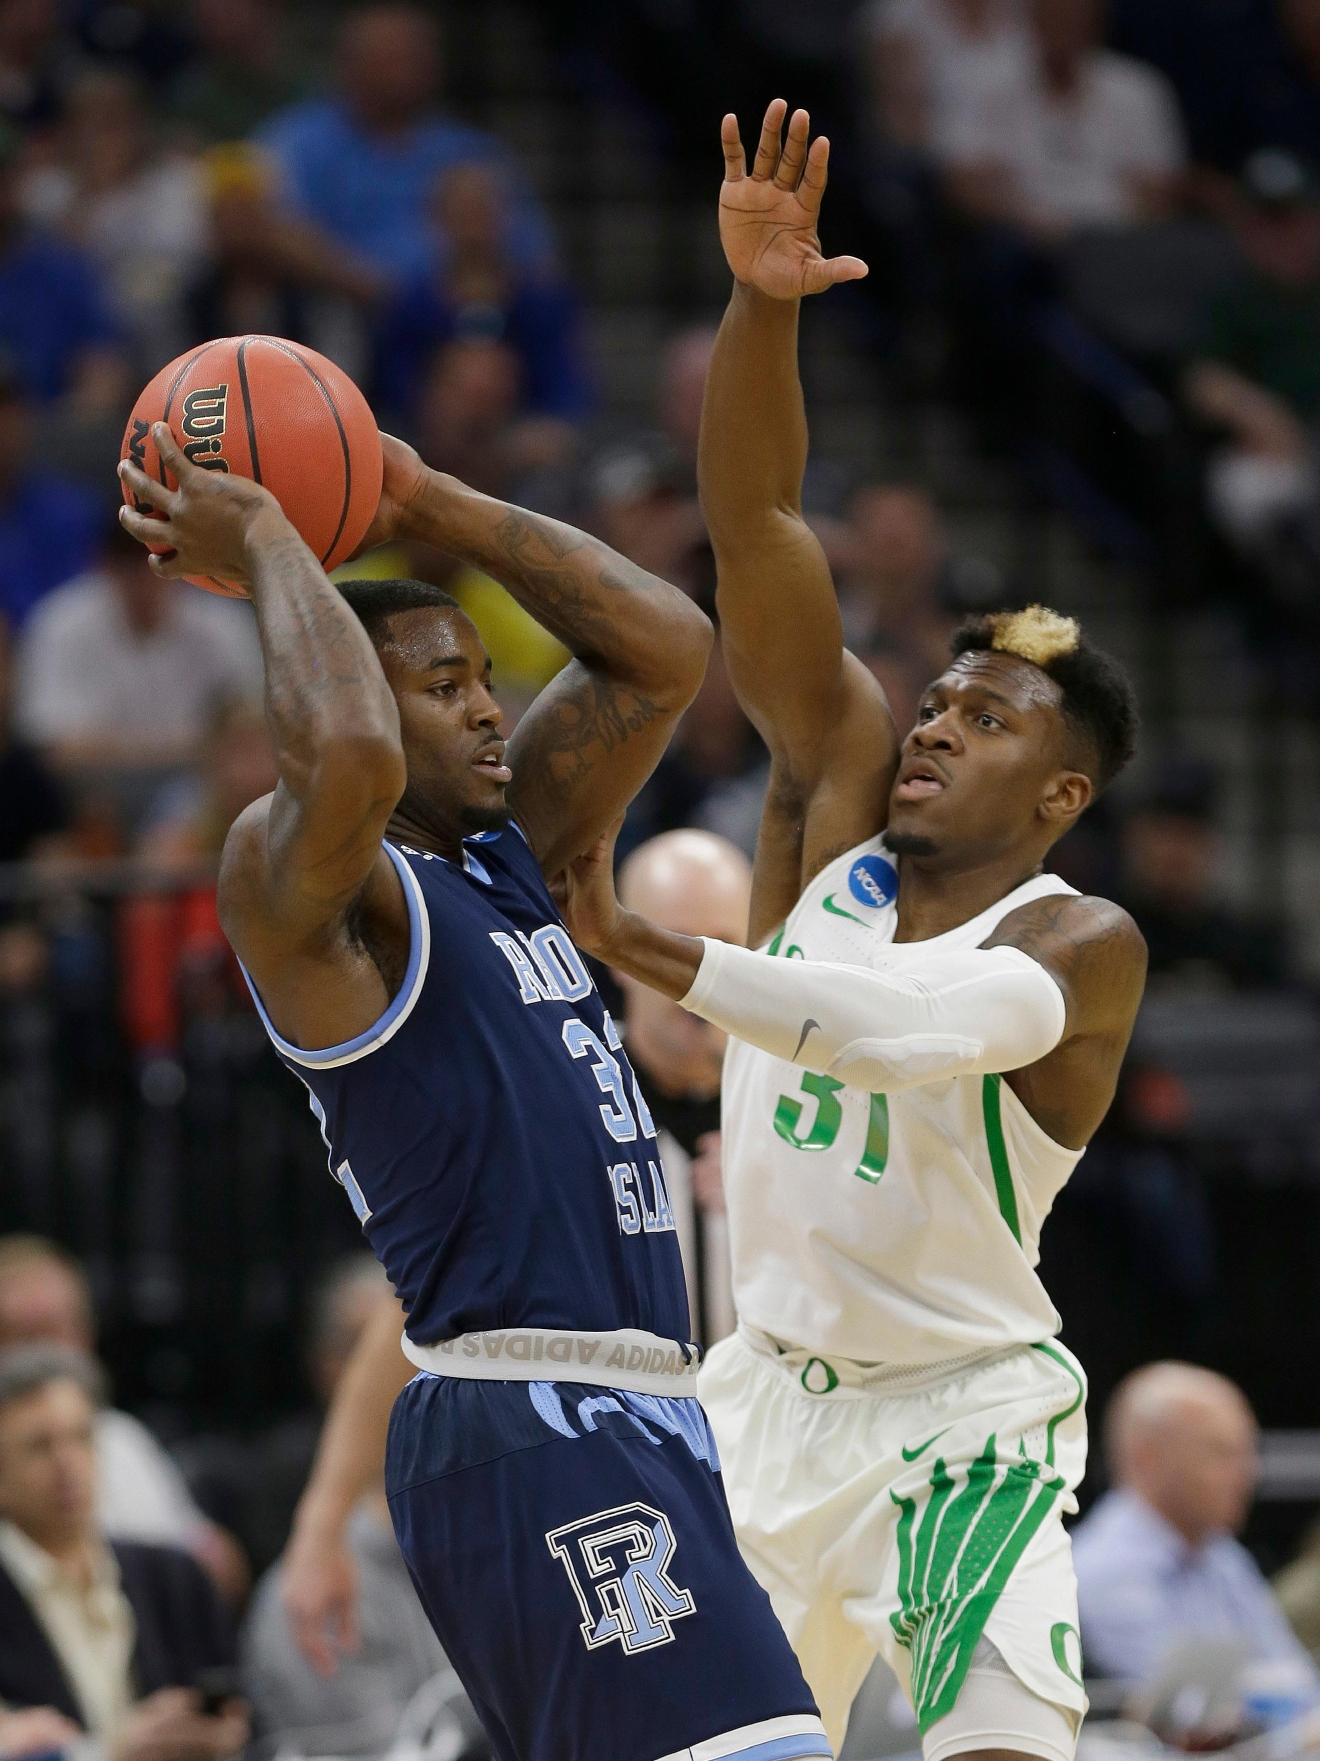 Rhode Island guard Jared Terrell, left, looks to pass against Oregon guard Dylan Ennis during the first half of a second-round game of the NCAA men's college basketball tournament in Sacramento, Calif., Sunday, March 19, 2017. (AP Photo/Rich Pedroncelli)